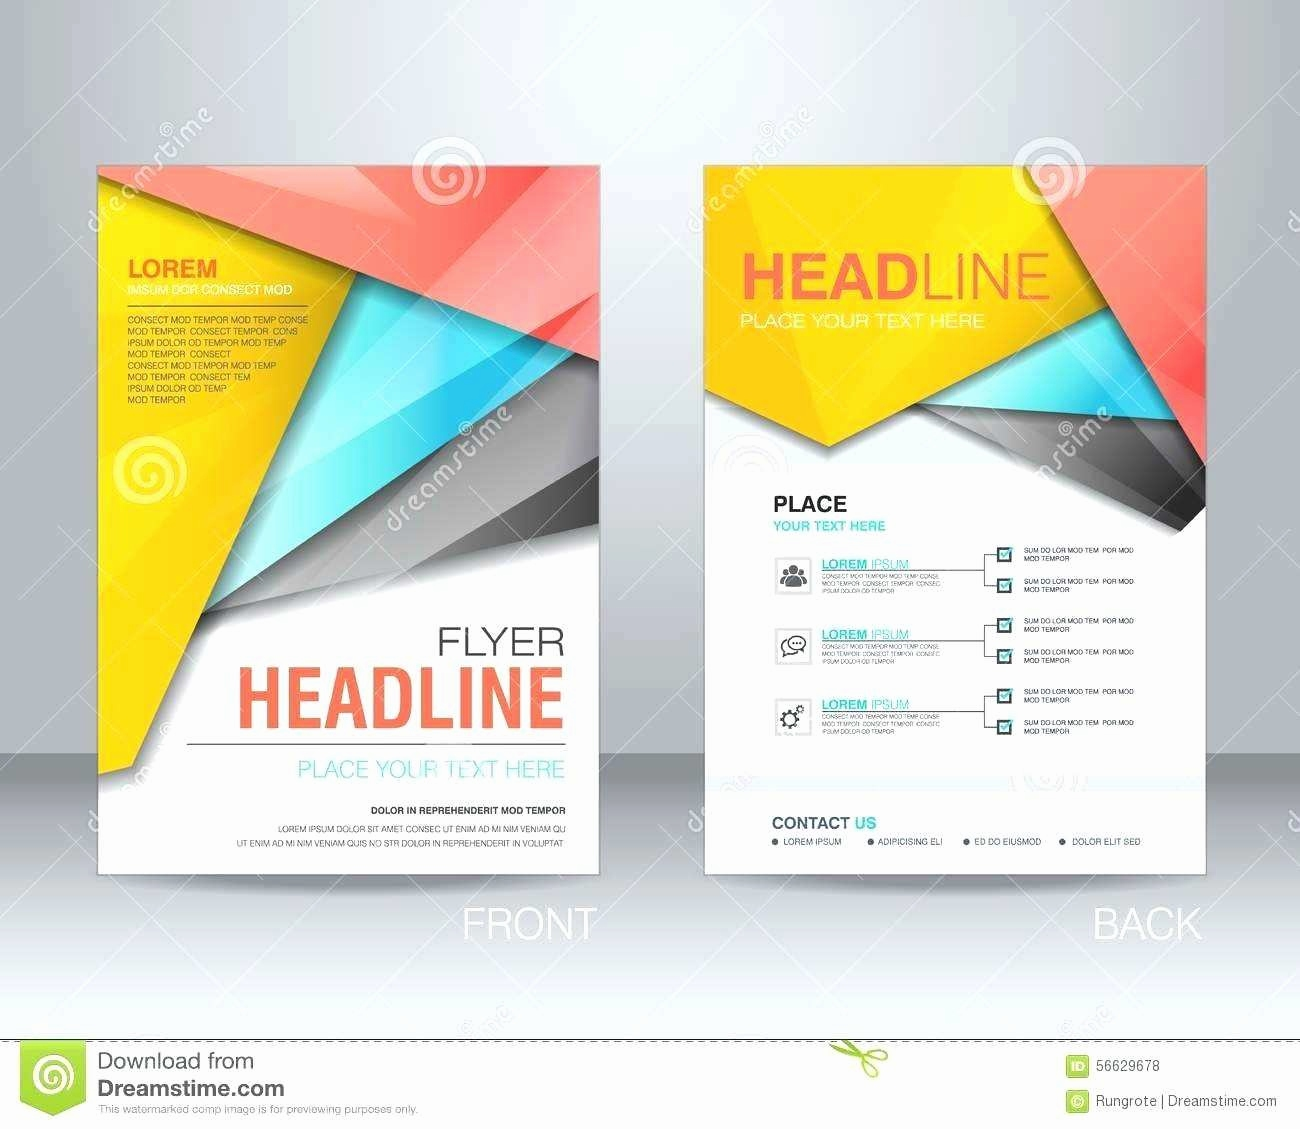 Indesign Flyer Vorlage Inspirierend Email Blast Templates Indesign Best Best Email Templates Fb